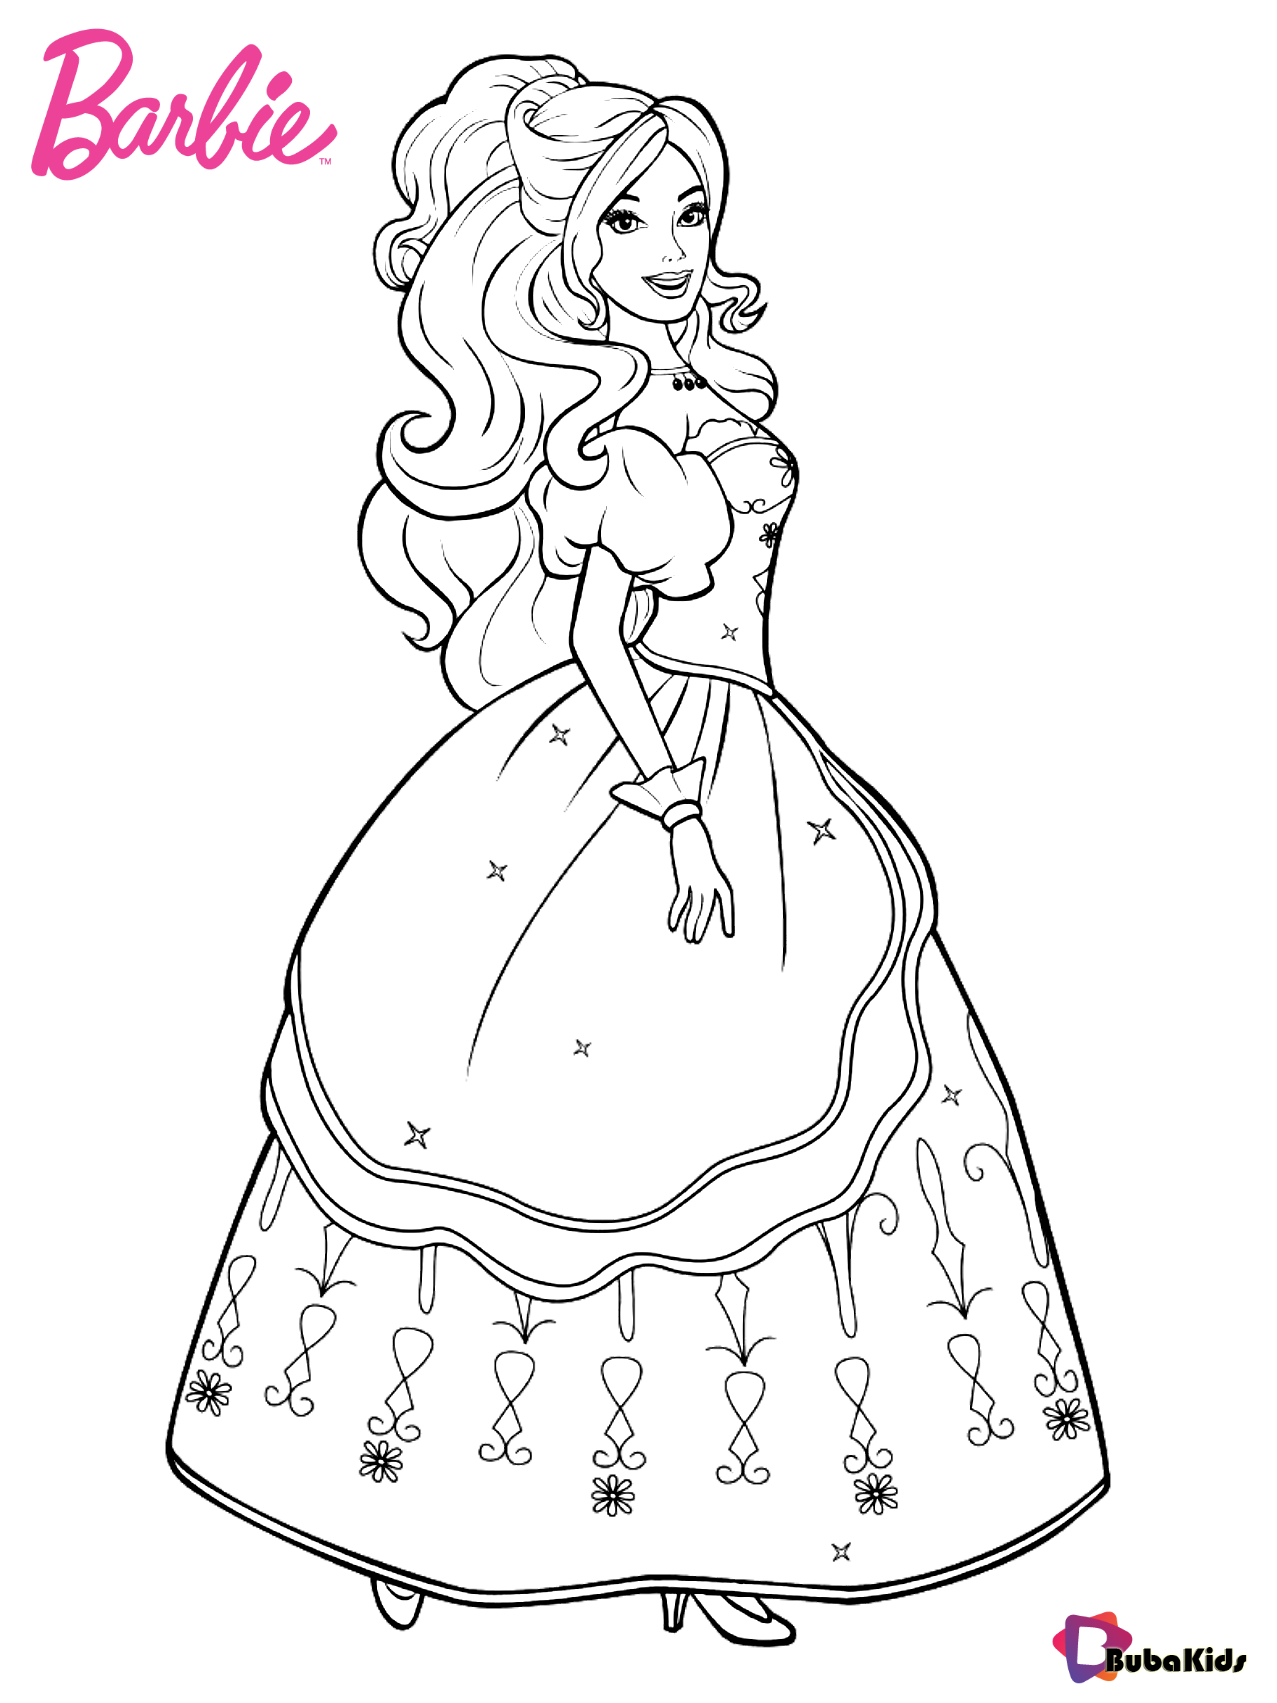 Pin By Lisa On Printables In 2020 Barbie Coloring Pages Barbie Coloring Princess Coloring